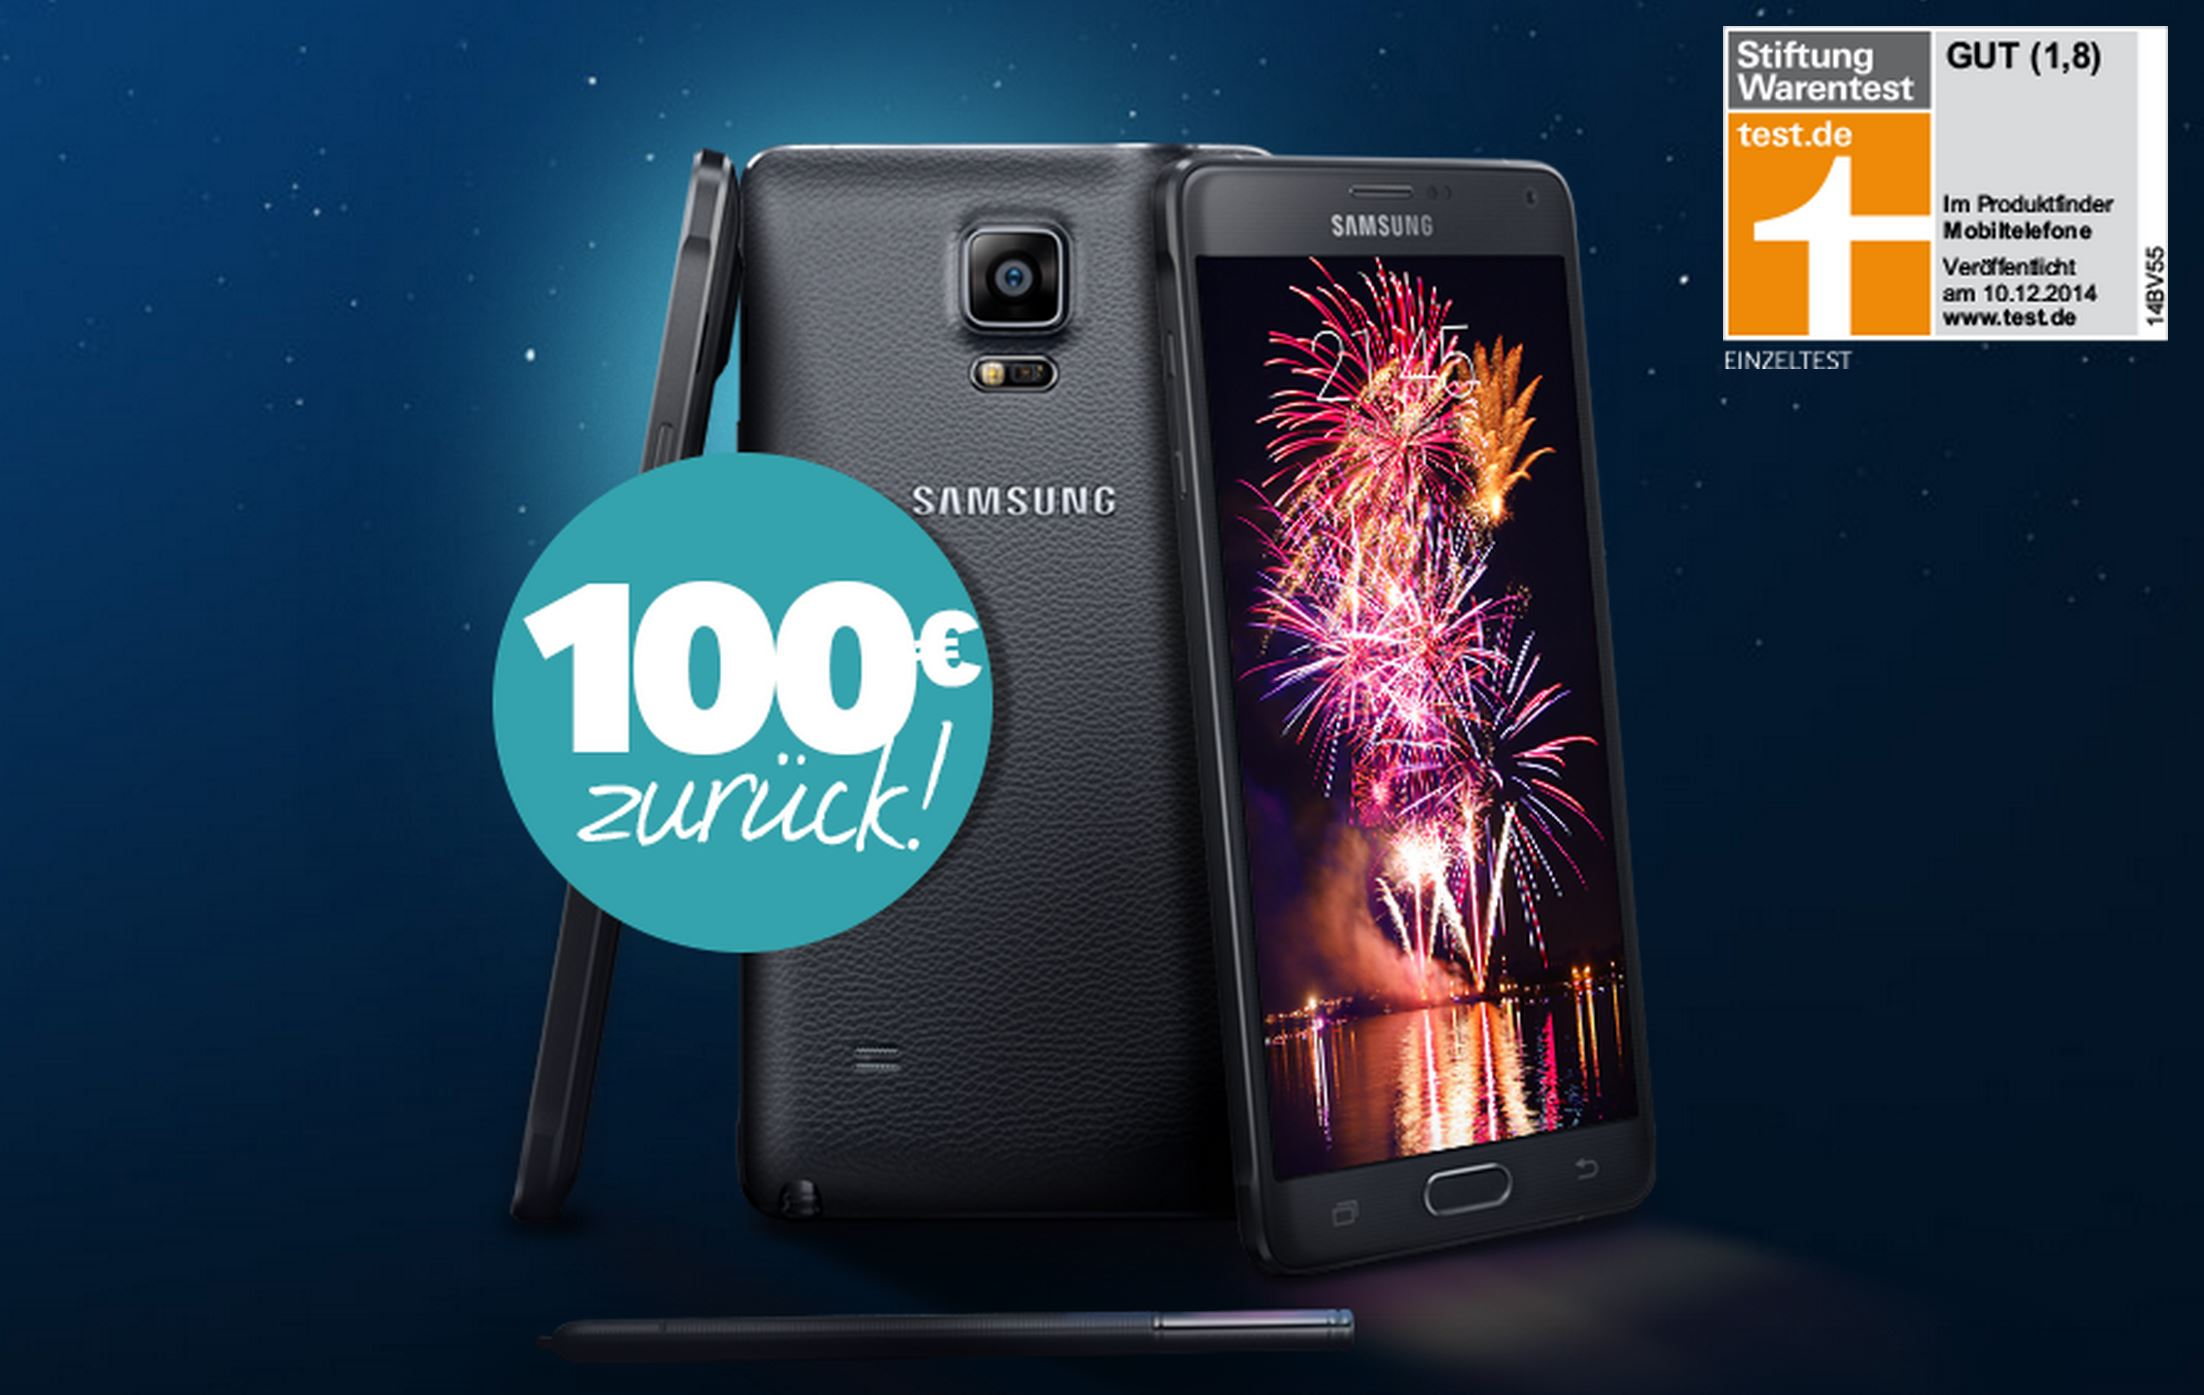 aff Android Galaxy Note 4 Neujahrsdeal note 4 Samsung